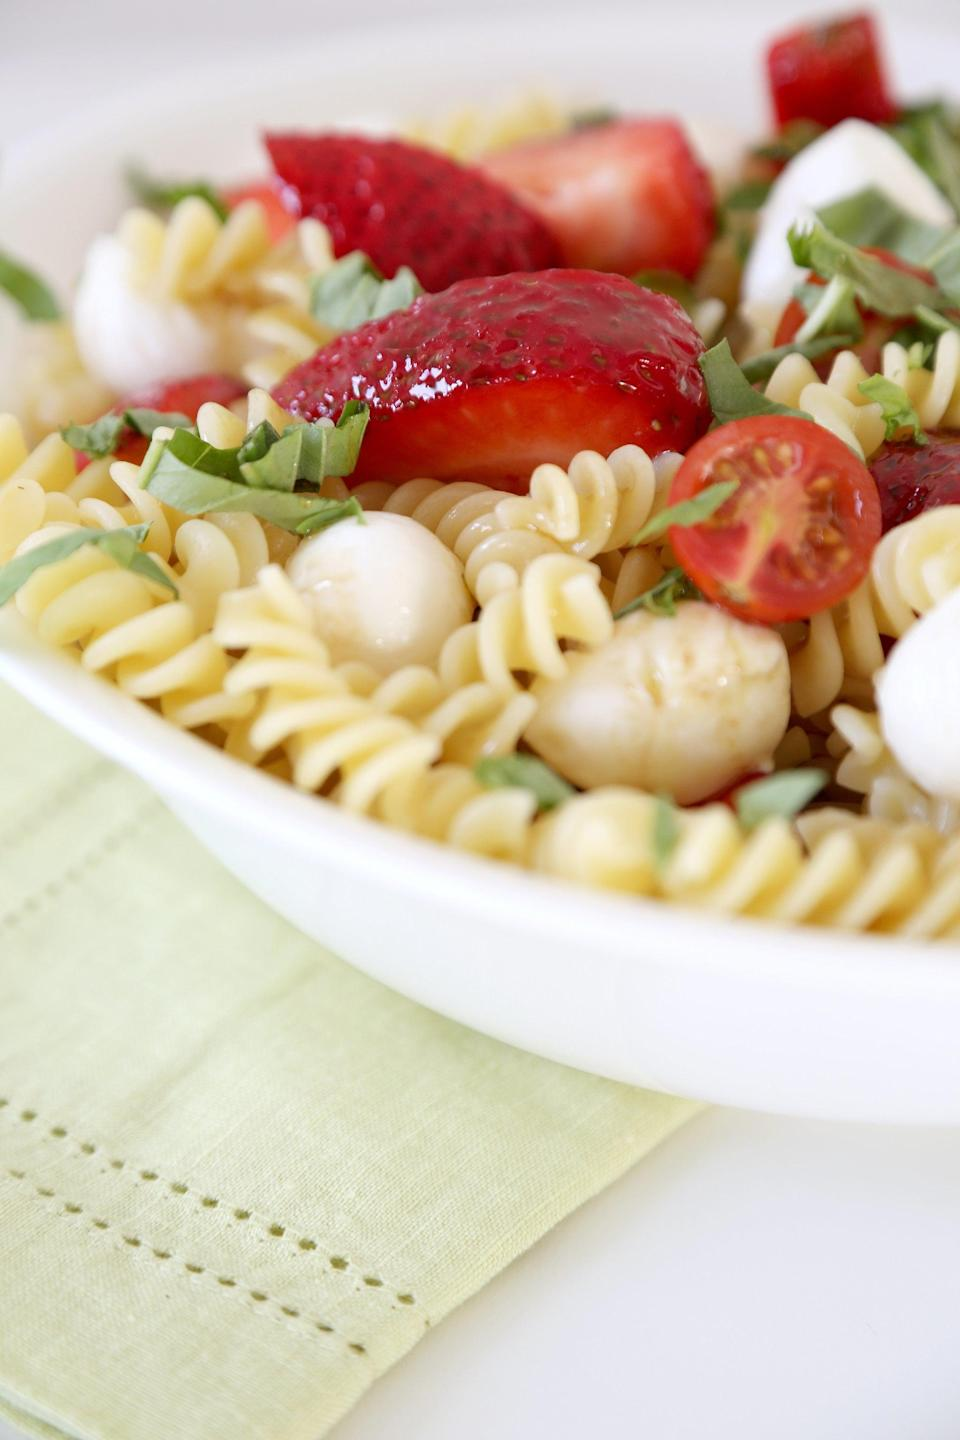 """<p>Traditional caprese calls for tomatoes, but switch things up with juicy strawberries if you're feeling adventurous. Topped off with bits of basil, every bite of this is a treat.</p> <p><strong>Get the recipe:</strong> <a href=""""http://www.popsugar.com/food/Strawberry-Caprese-Pasta-Salad-40921523/"""" class=""""link rapid-noclick-resp"""" rel=""""nofollow noopener"""" target=""""_blank"""" data-ylk=""""slk:strawberry caprese pasta salad"""">strawberry caprese pasta salad</a></p>"""